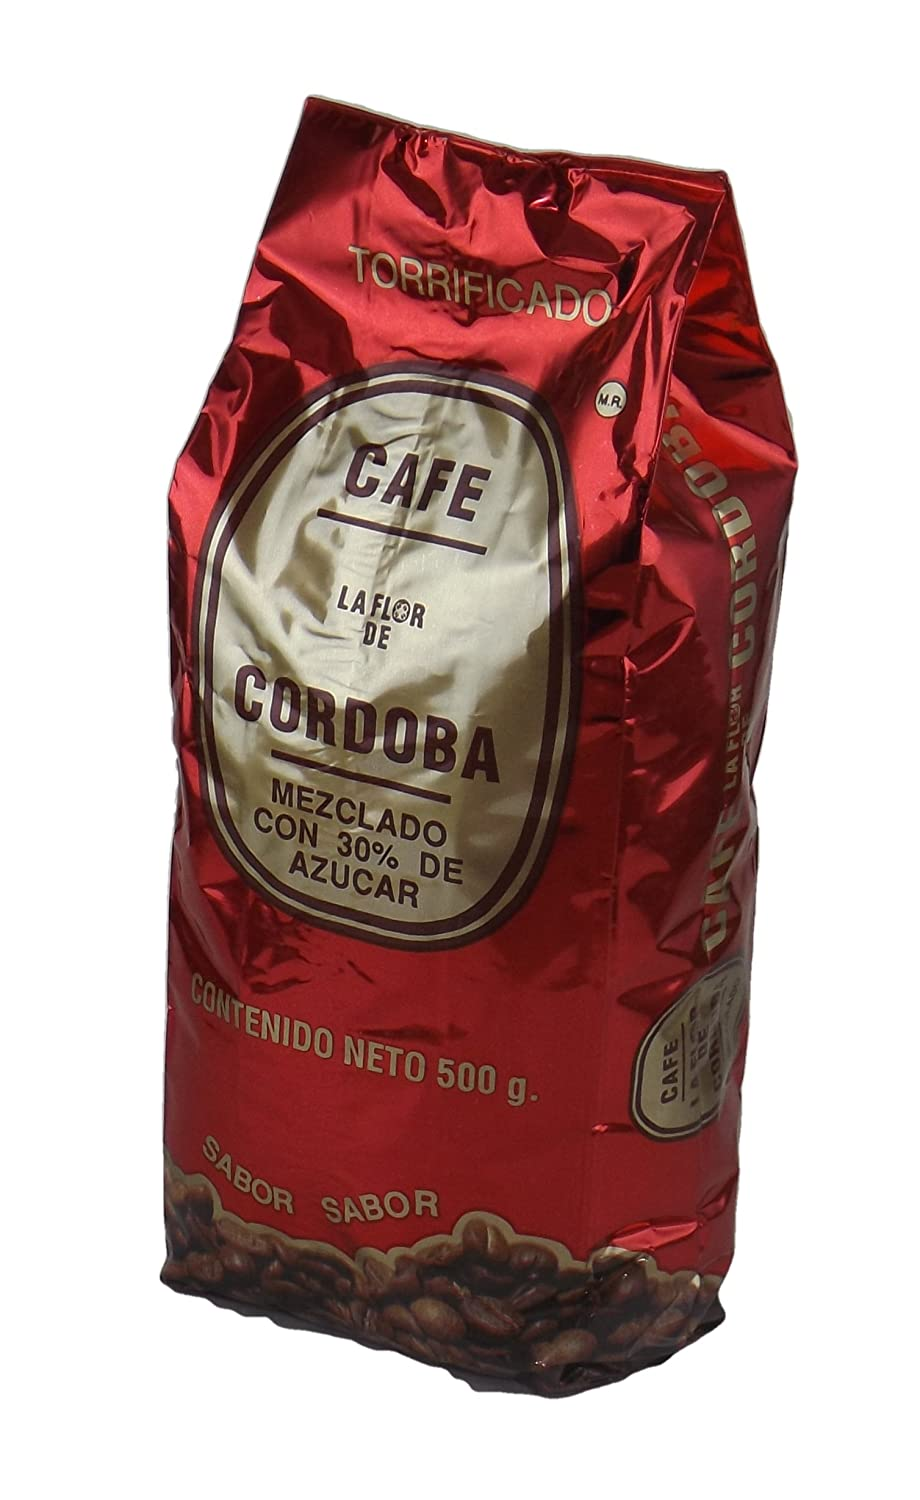 Amazon.com : Cafe La Flor de Cordoba Torrificado para Cafe de Olla 1.1 Lbs (500 gr) : Grocery & Gourmet Food